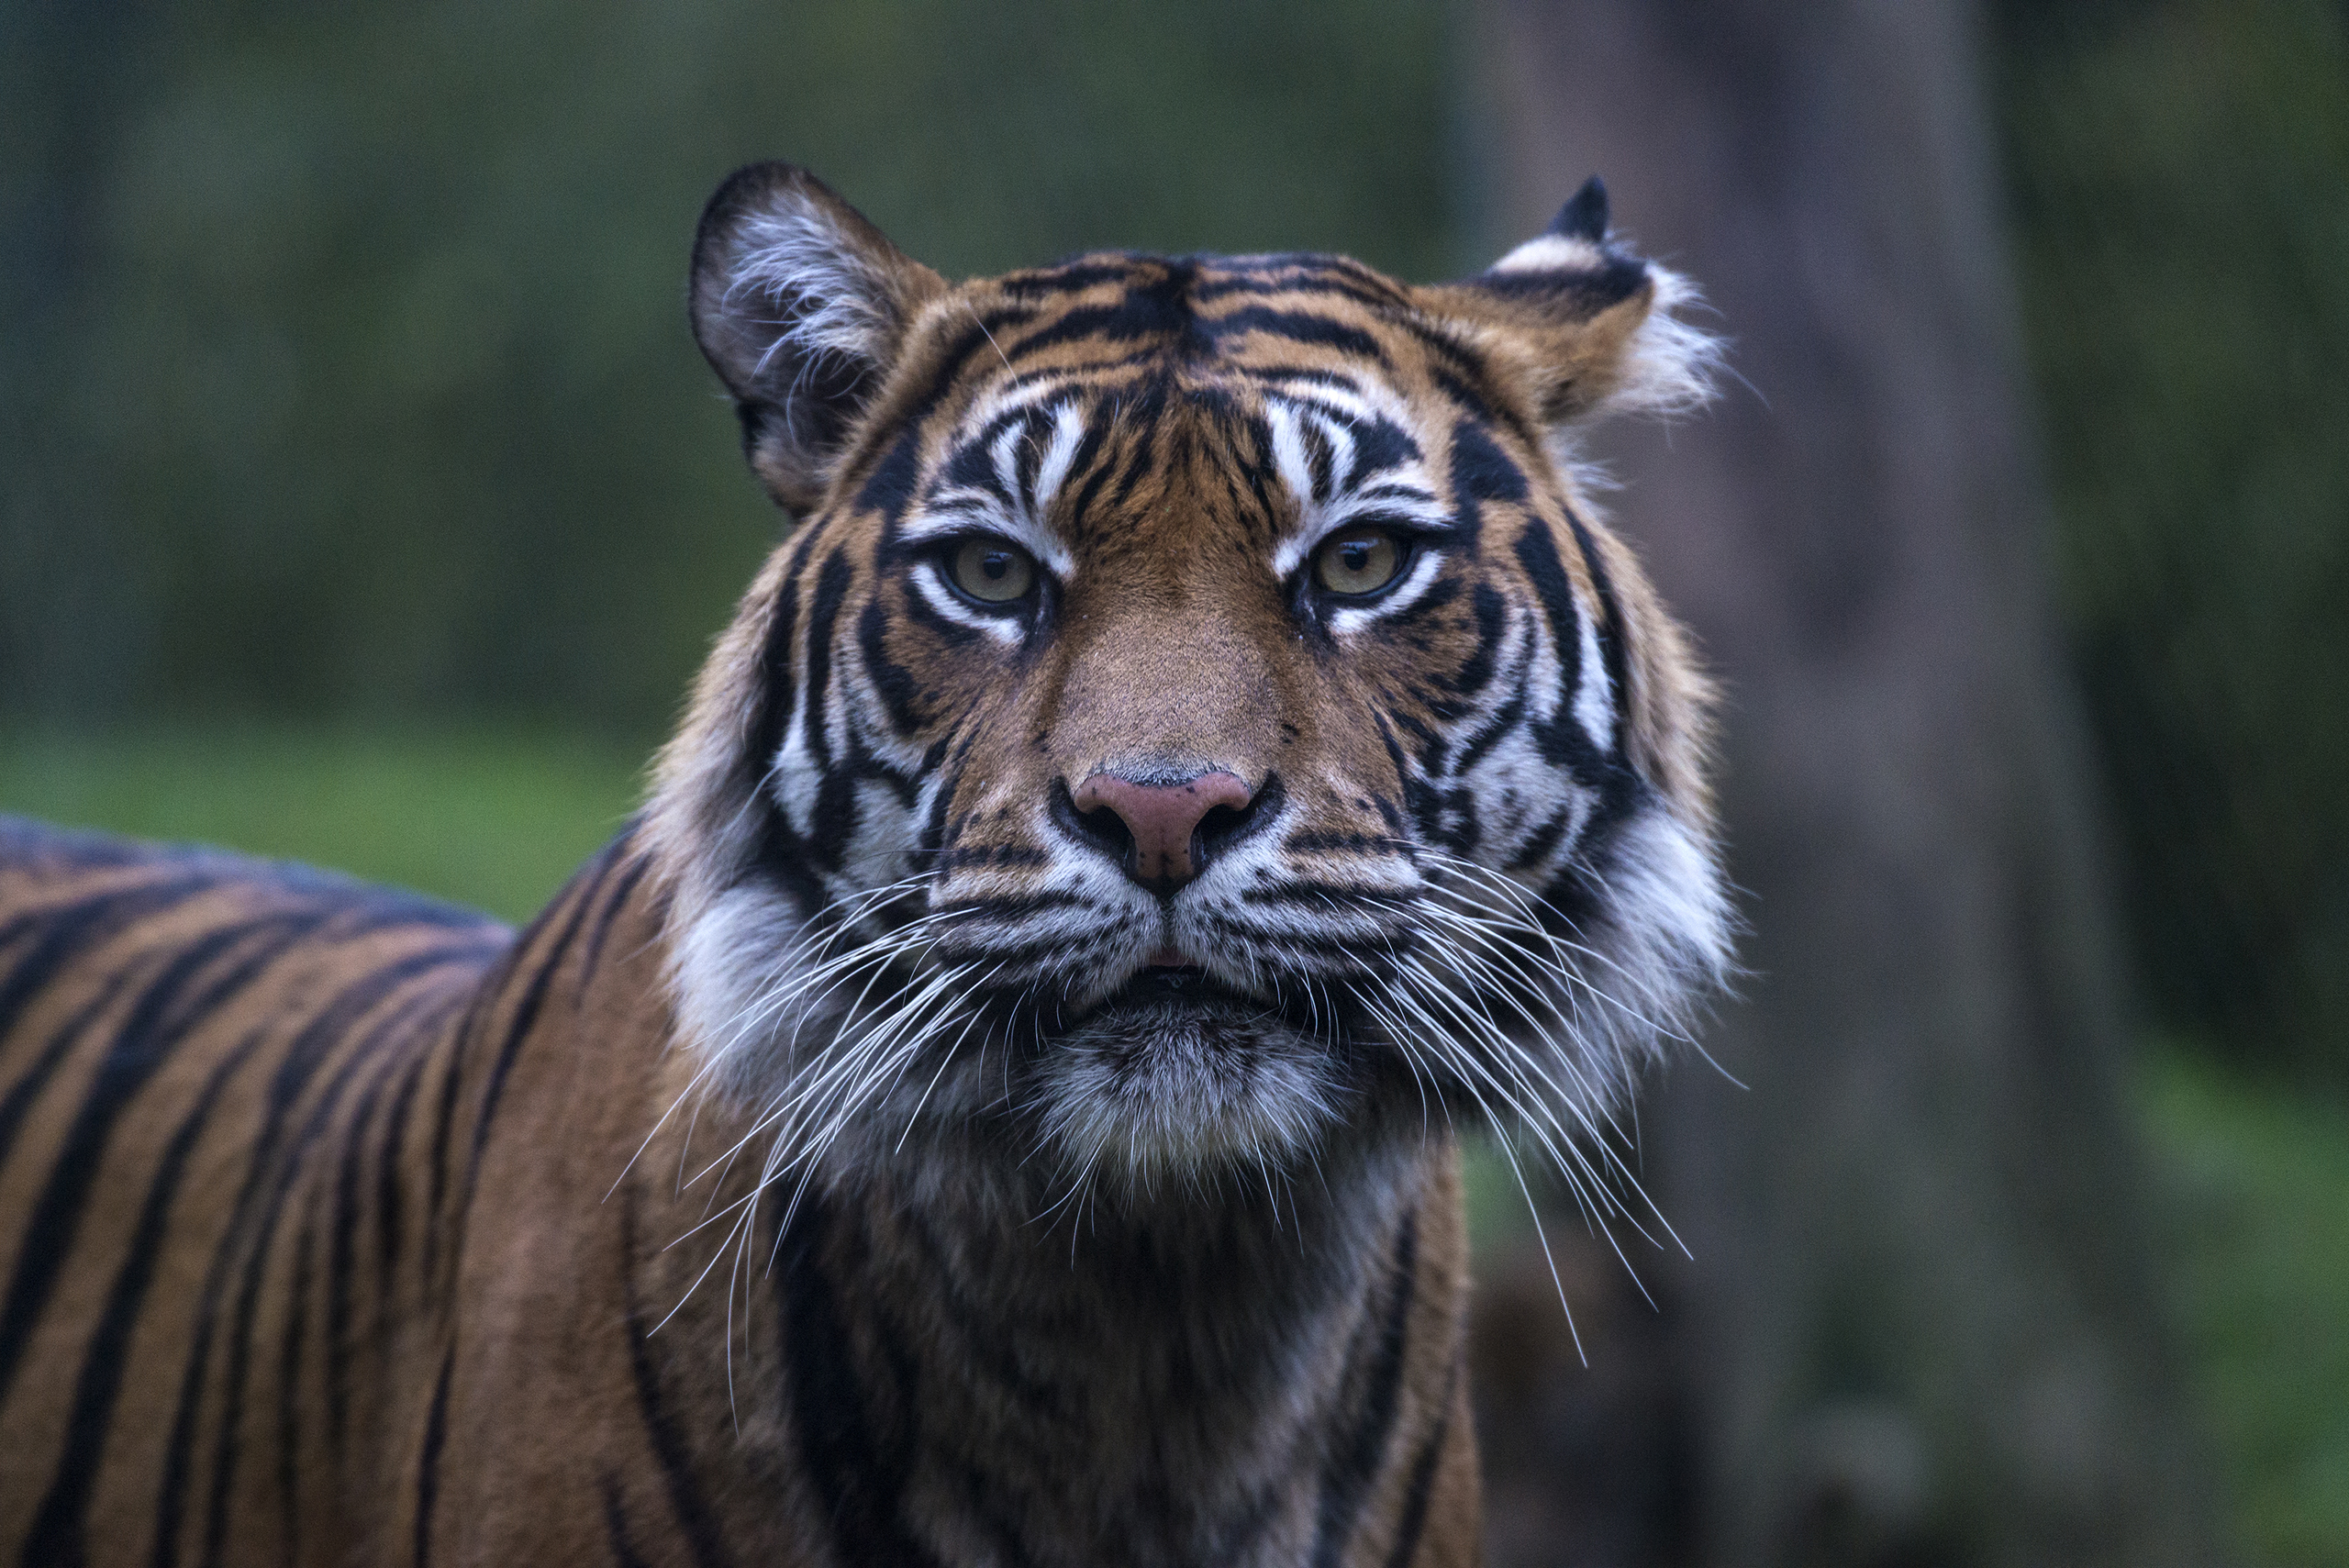 Sumatran Tiger, Sumatra, Indonesia. These tigers are distinguished by heavy black stripes on their orange coats. Poaching is the biggest threat to these big cats, of which only about 400 remain.